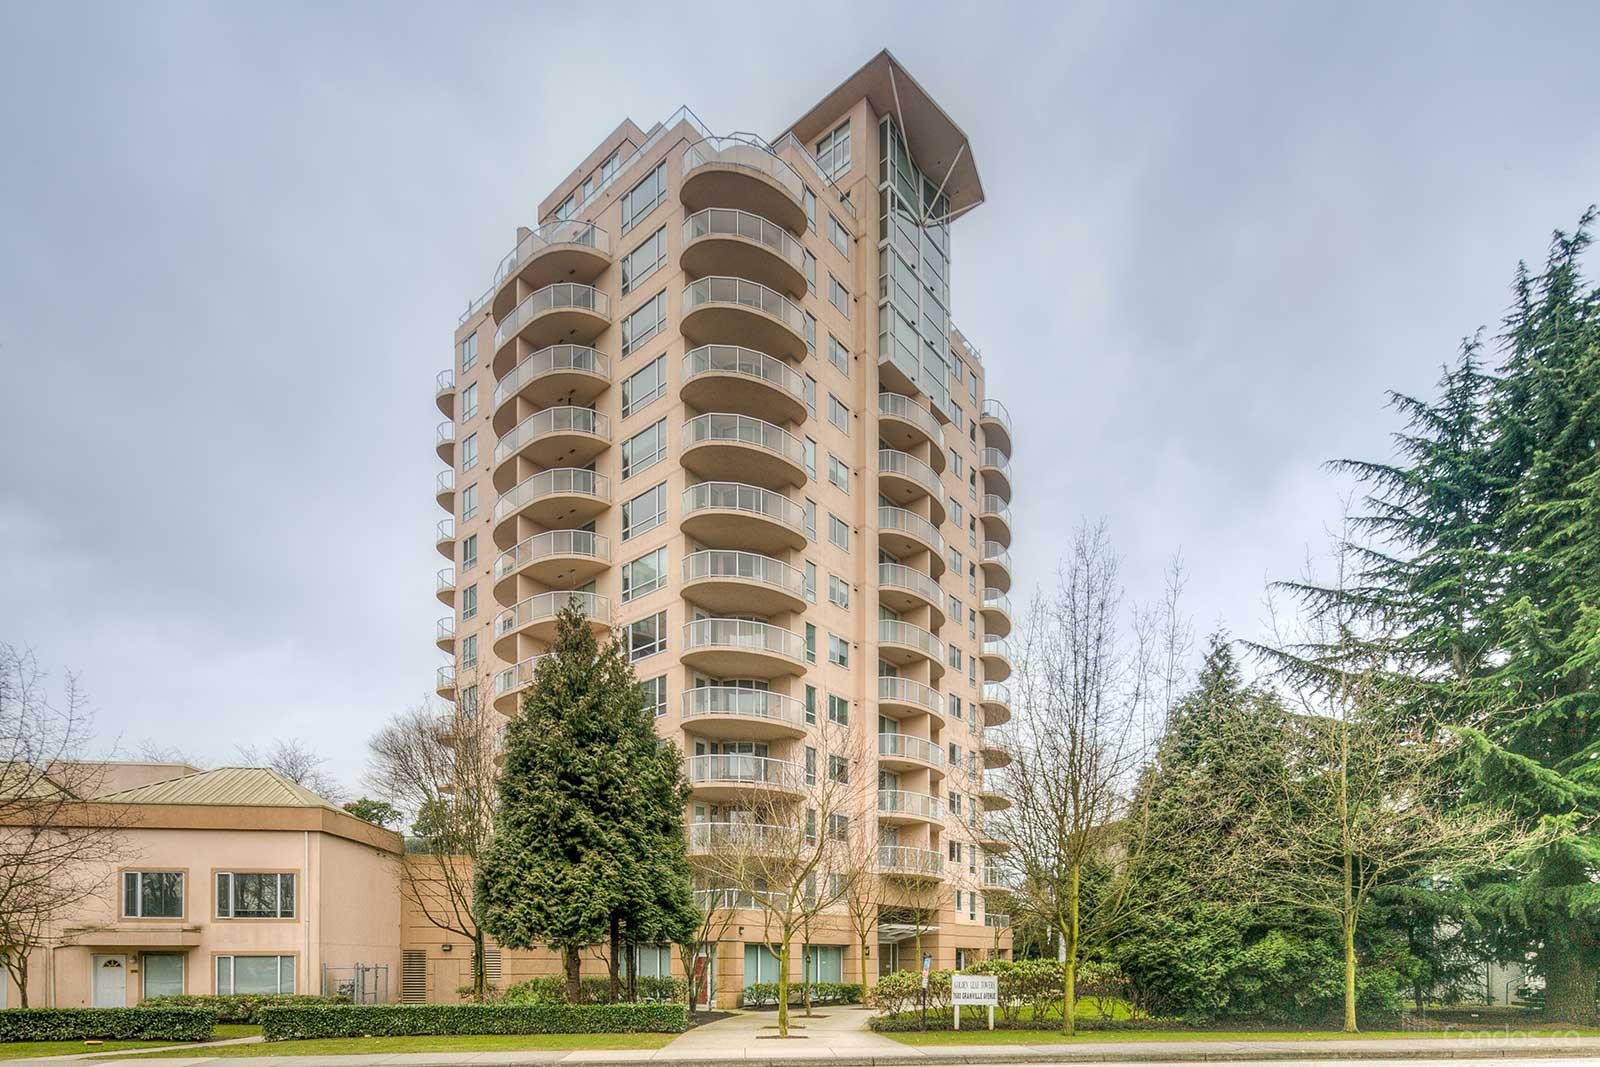 Golden Leaf Towers at 7680 Granville Ave, Richmond 0